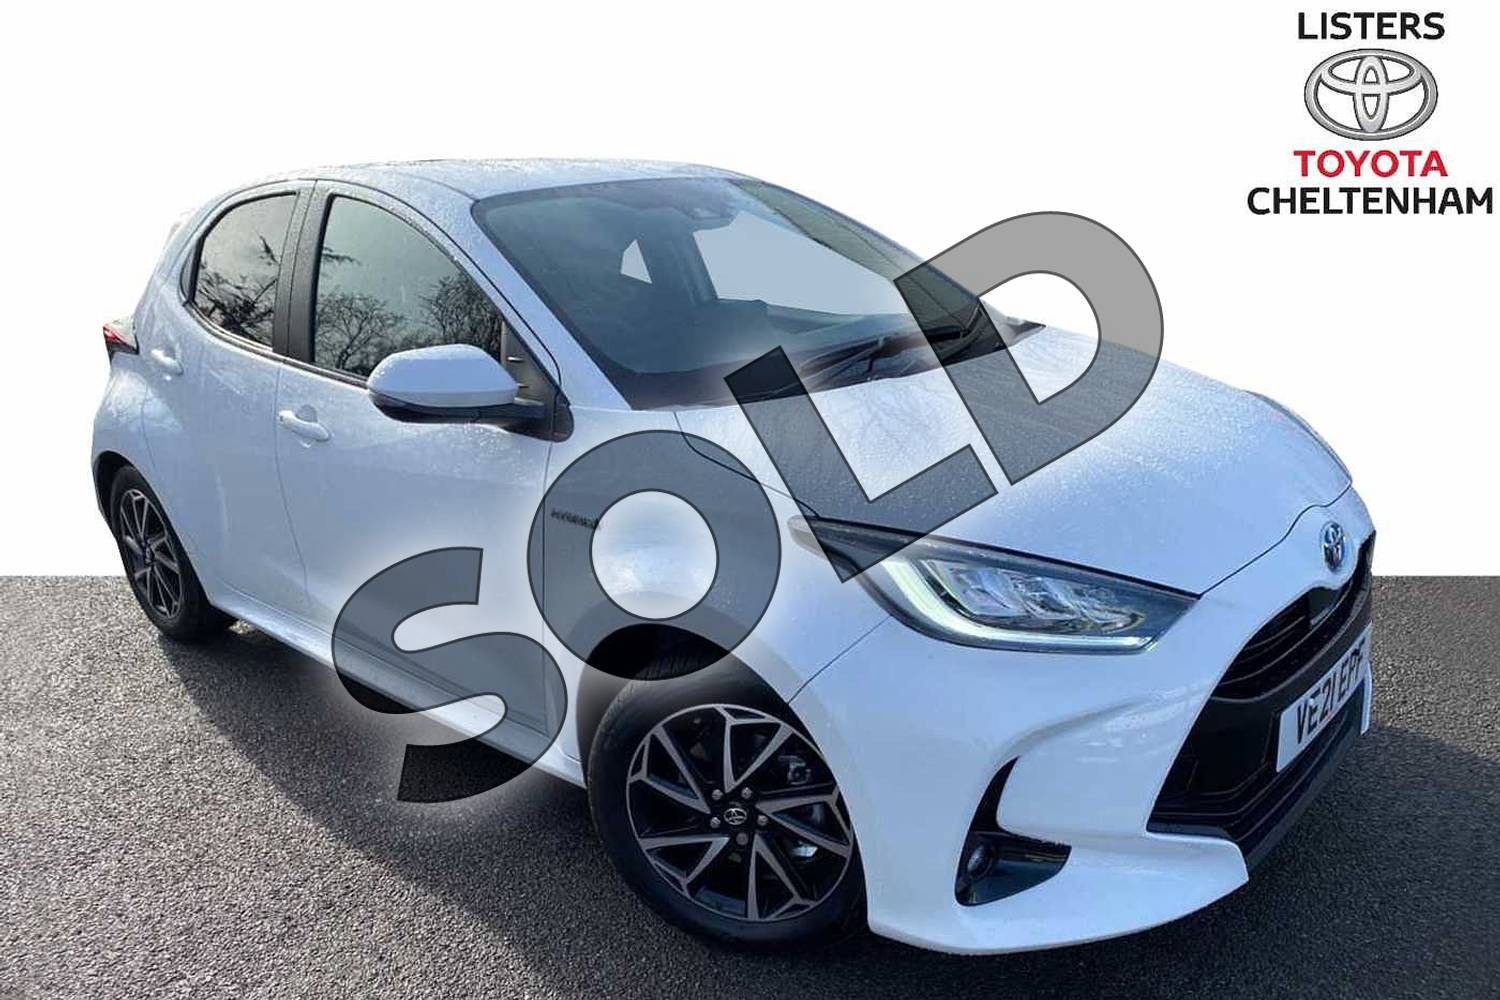 2021 Toyota Yaris Hatchback 1.5 Hybrid Design 5dr CVT in White at Listers Toyota Cheltenham